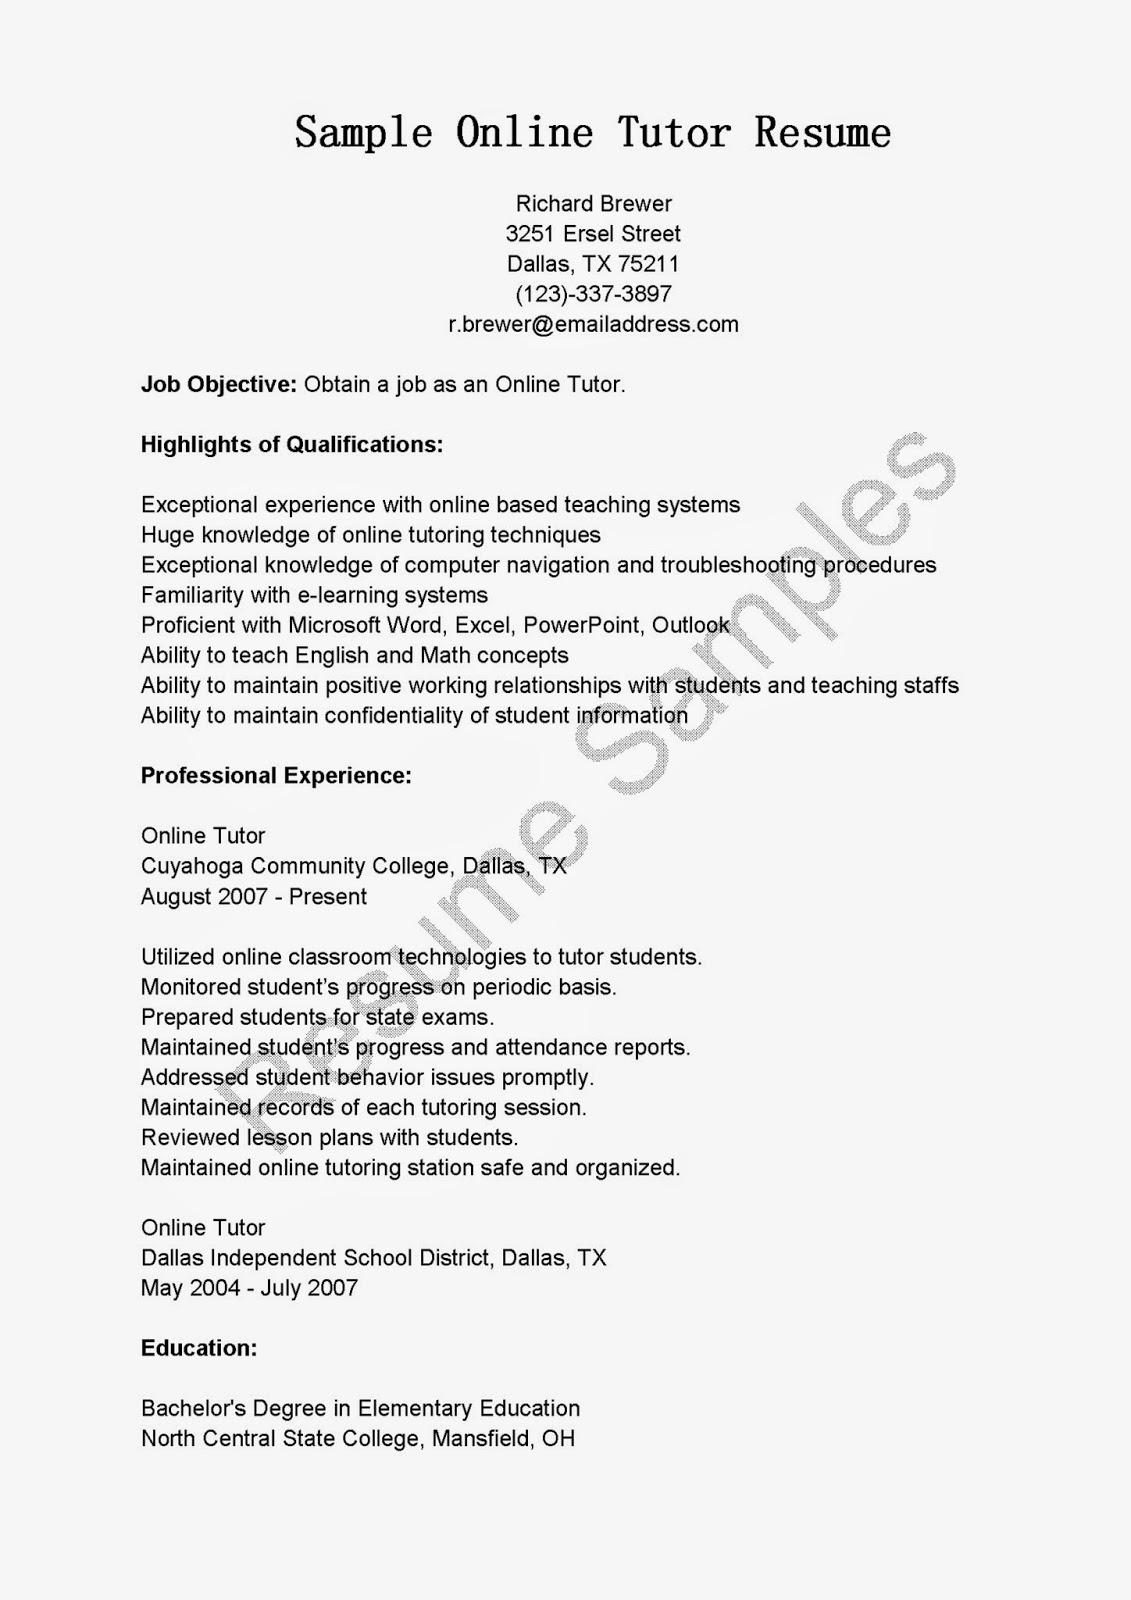 domestic helper resume my cv resume creative resumes and cvs samples write my resume my cv resume creative resumes and cvs samples write my resume middot resume online